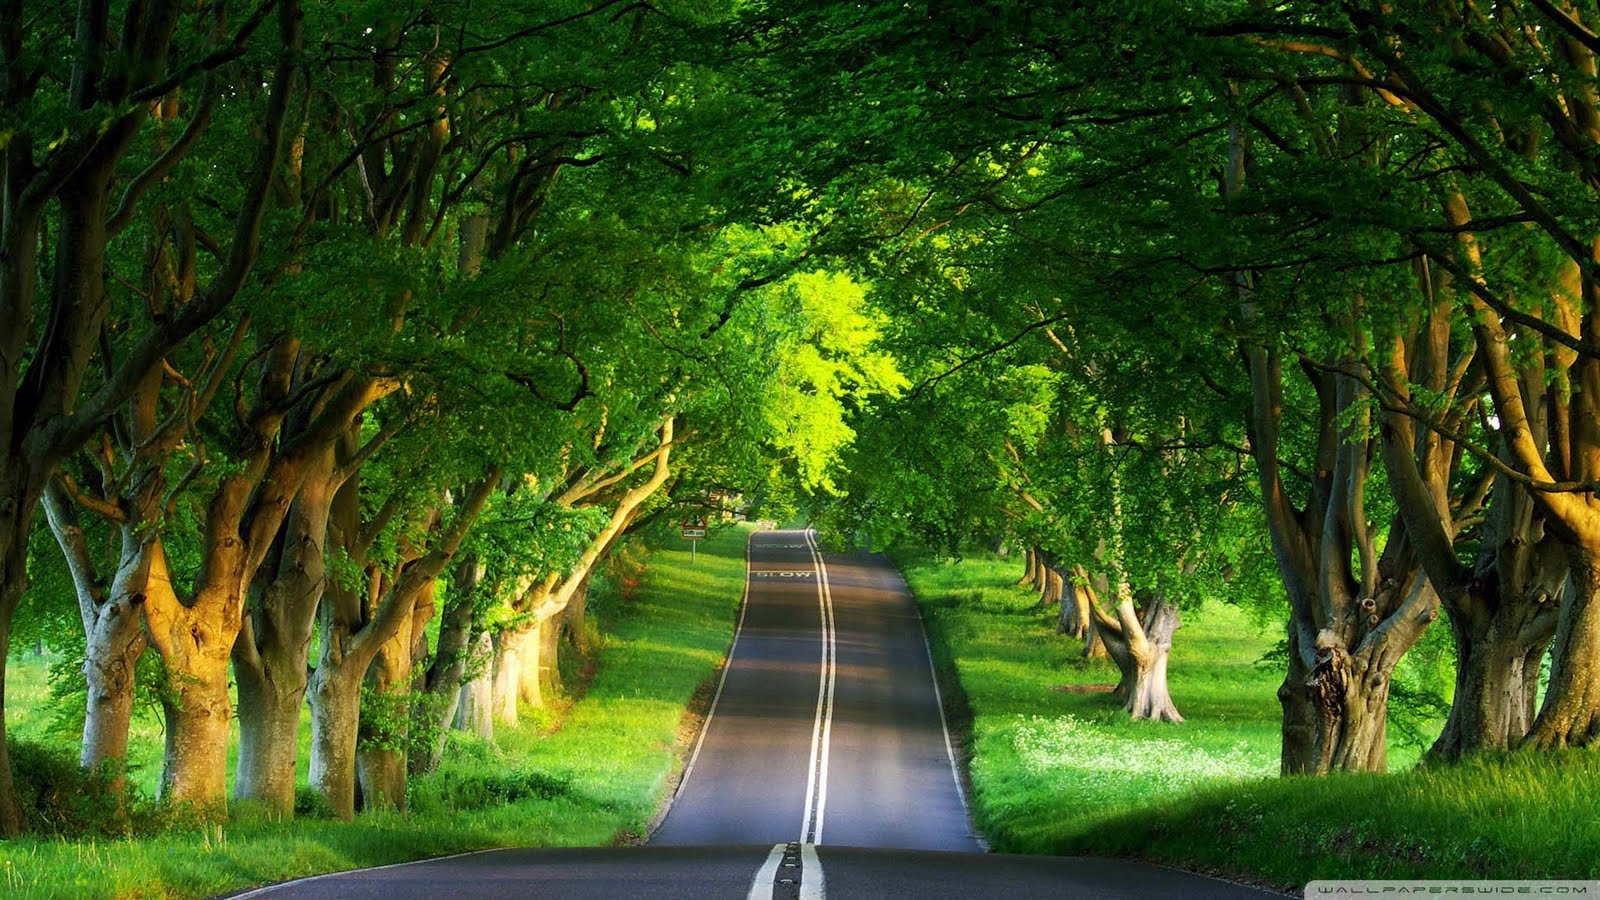 Nature - Beautiful Road